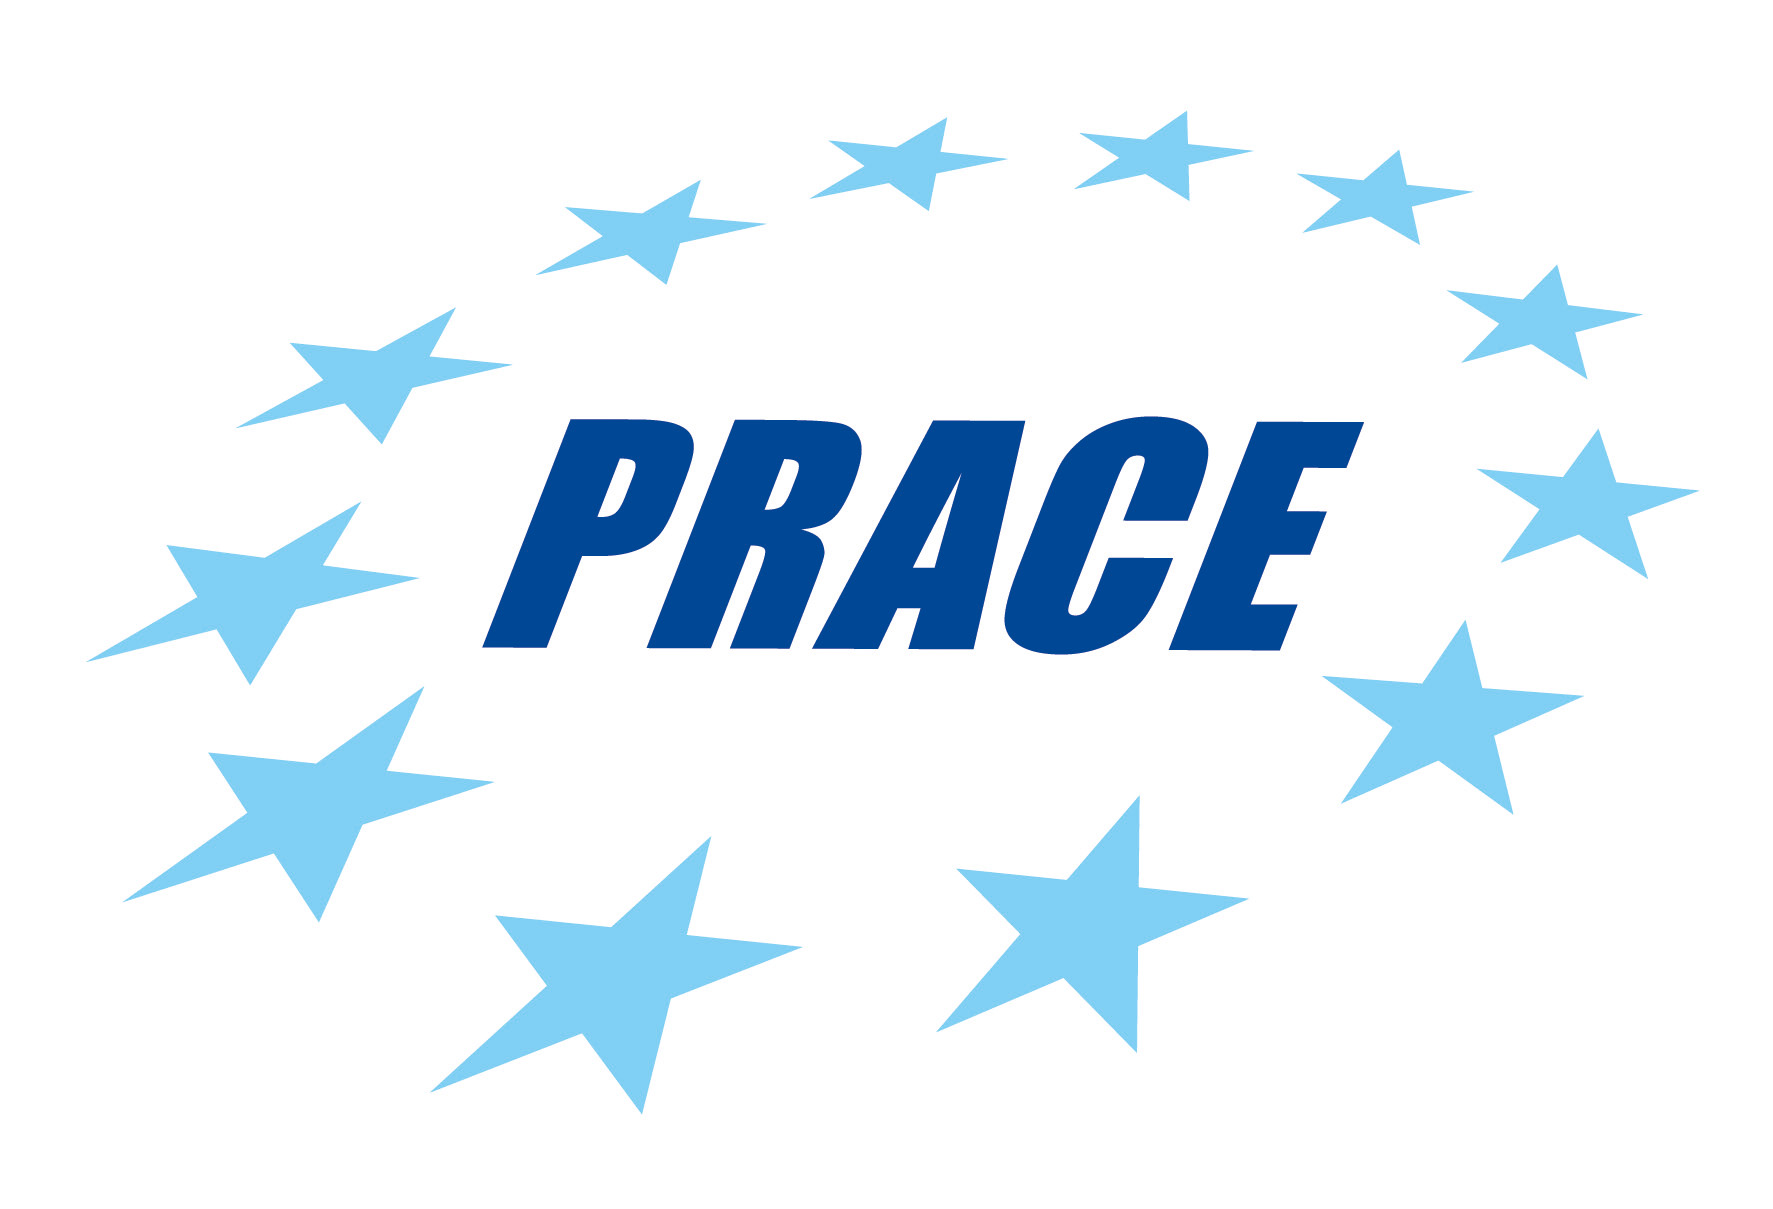 PRACE-4IP / PRACE-5IP - Partnership for advanced computing in Europe